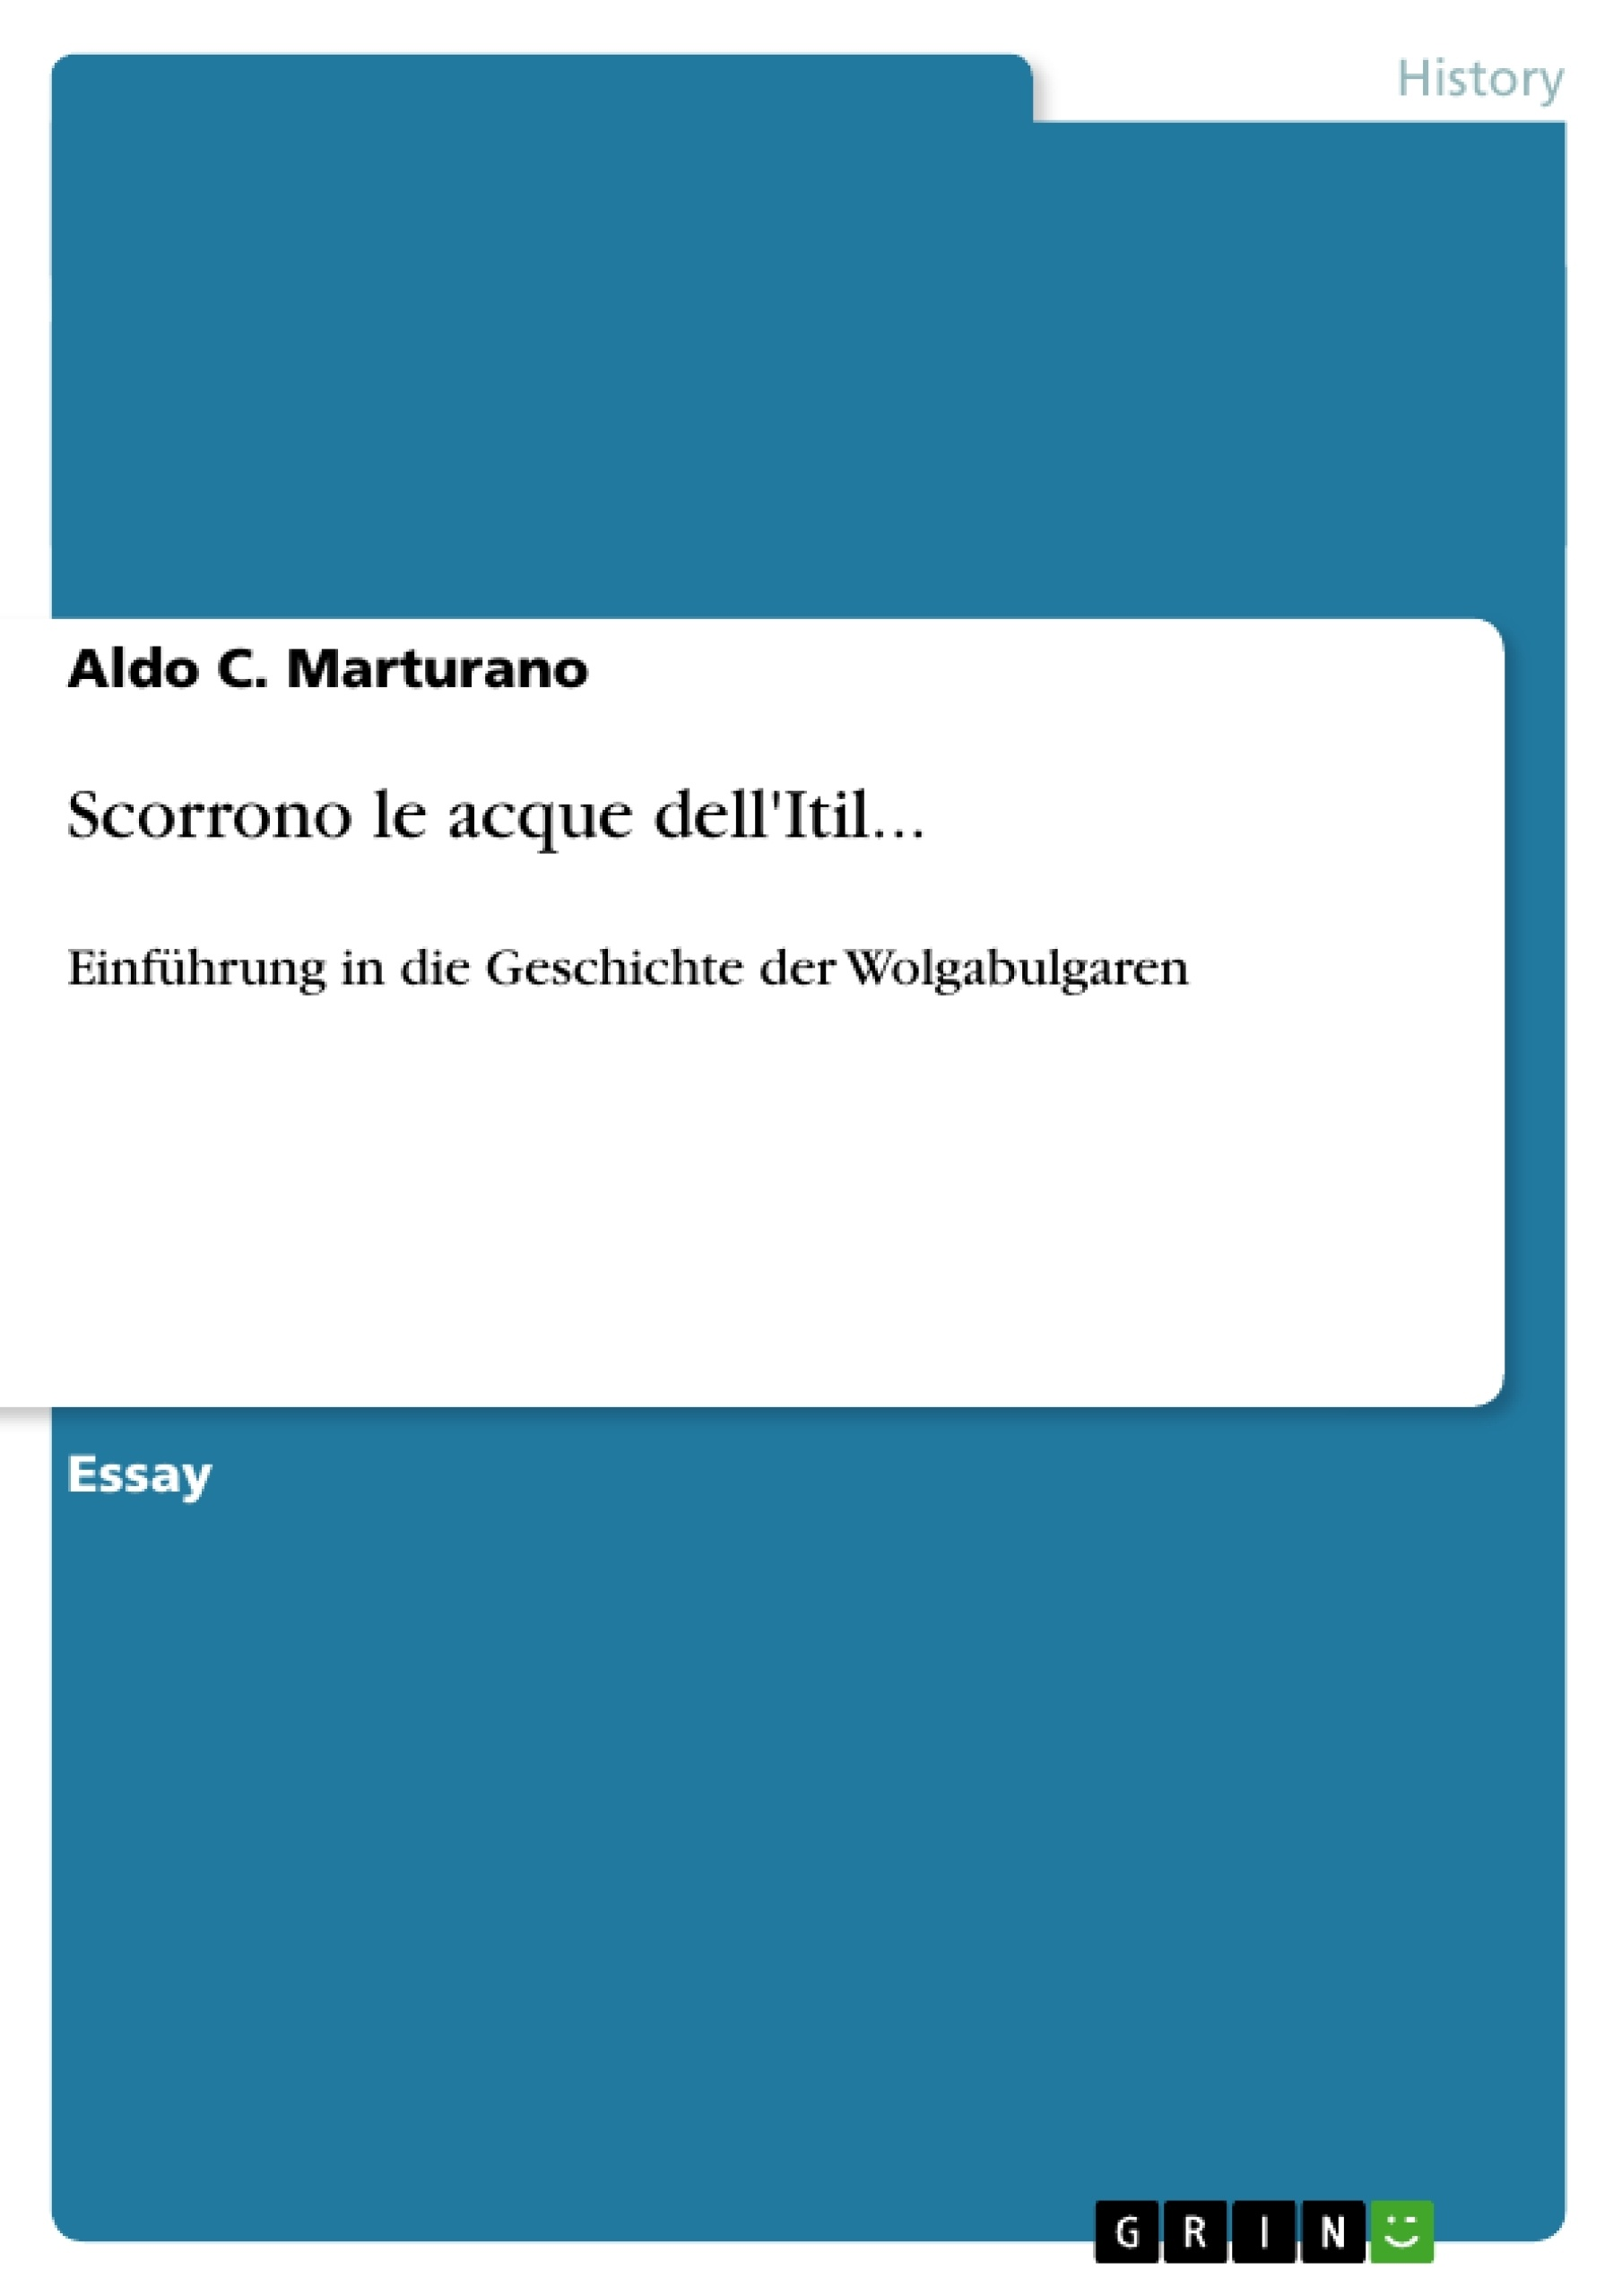 Title: Scorrono le acque dell'Itil...